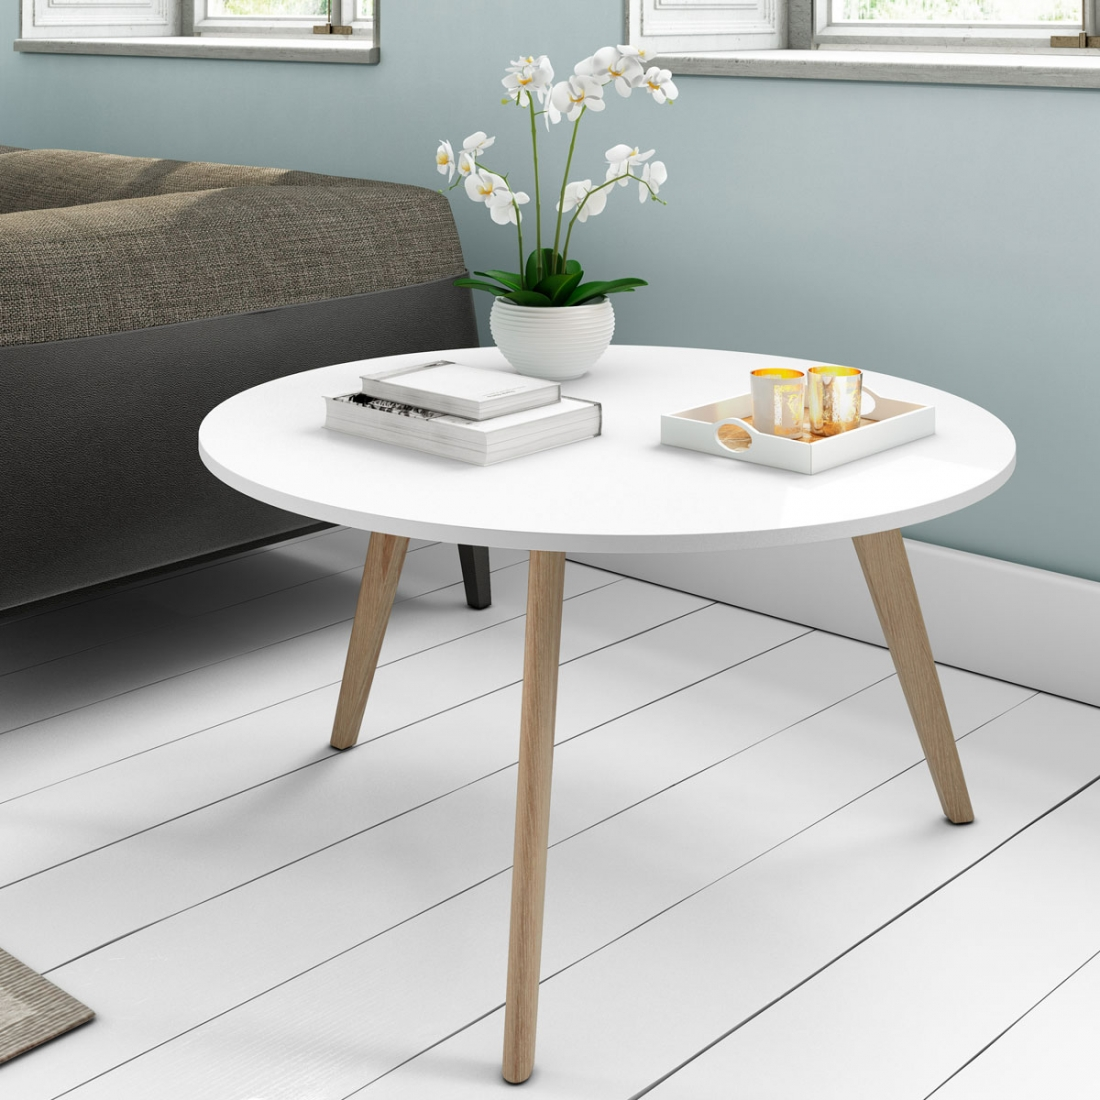 Pieds de table basse design for Pied table design